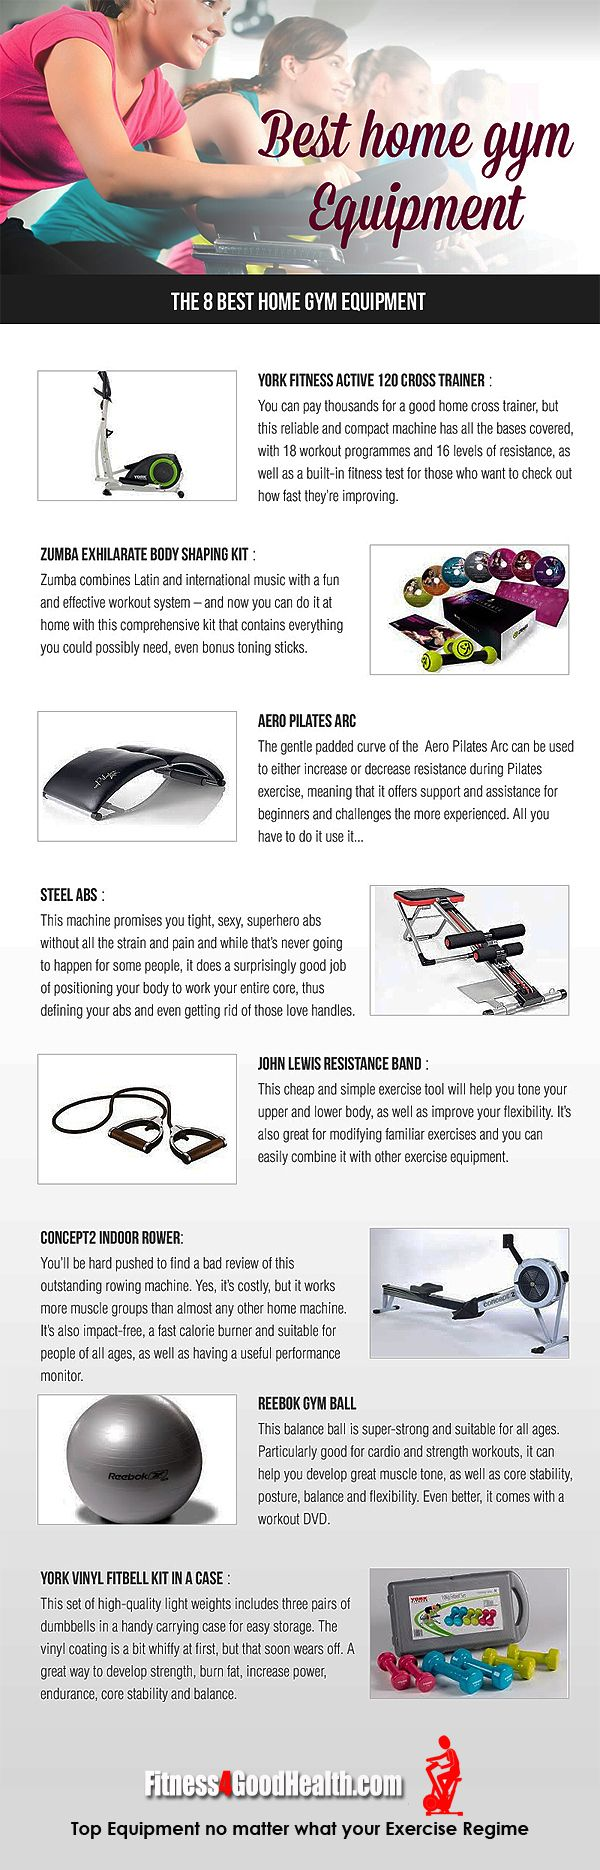 Best Home Gym Equipment Infographic. Gym Membership or your own Home Gym. Ideas of things that you can incorporates into your own Gym. #home_gyms #gym_equipment